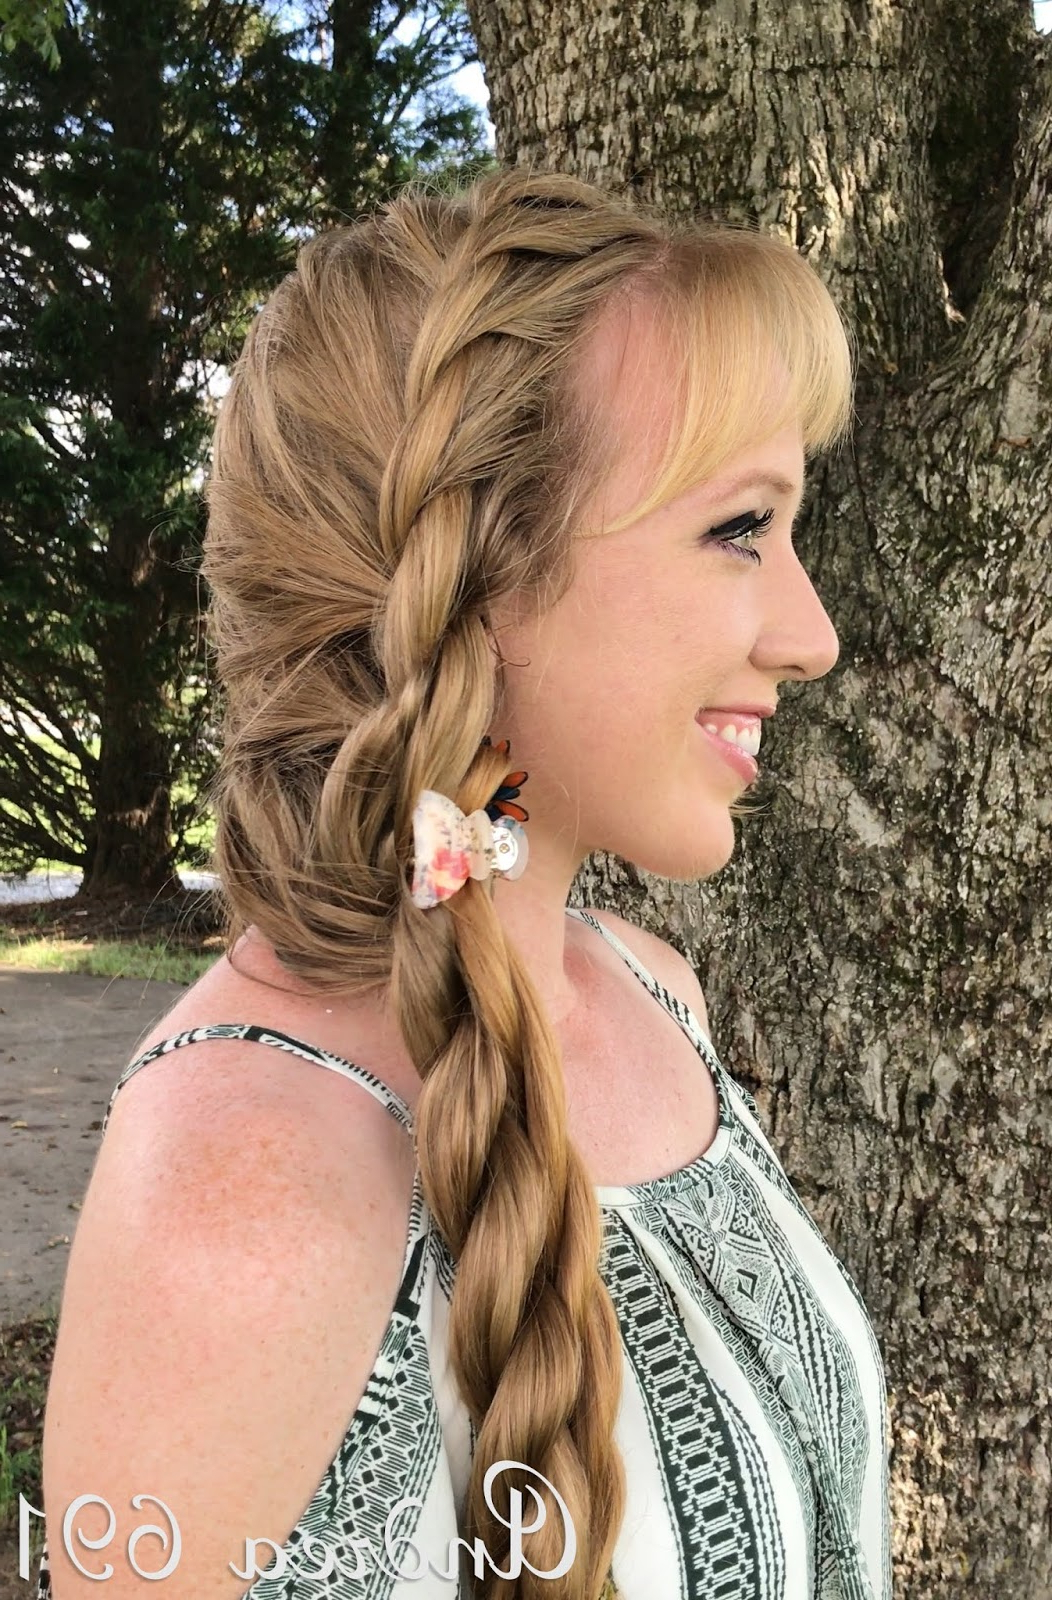 2019 Side Rope Braid Hairstyles For Long Hair Pertaining To Braids & Hairstyles For Super Long Hair: Side Rope Braid (View 16 of 20)